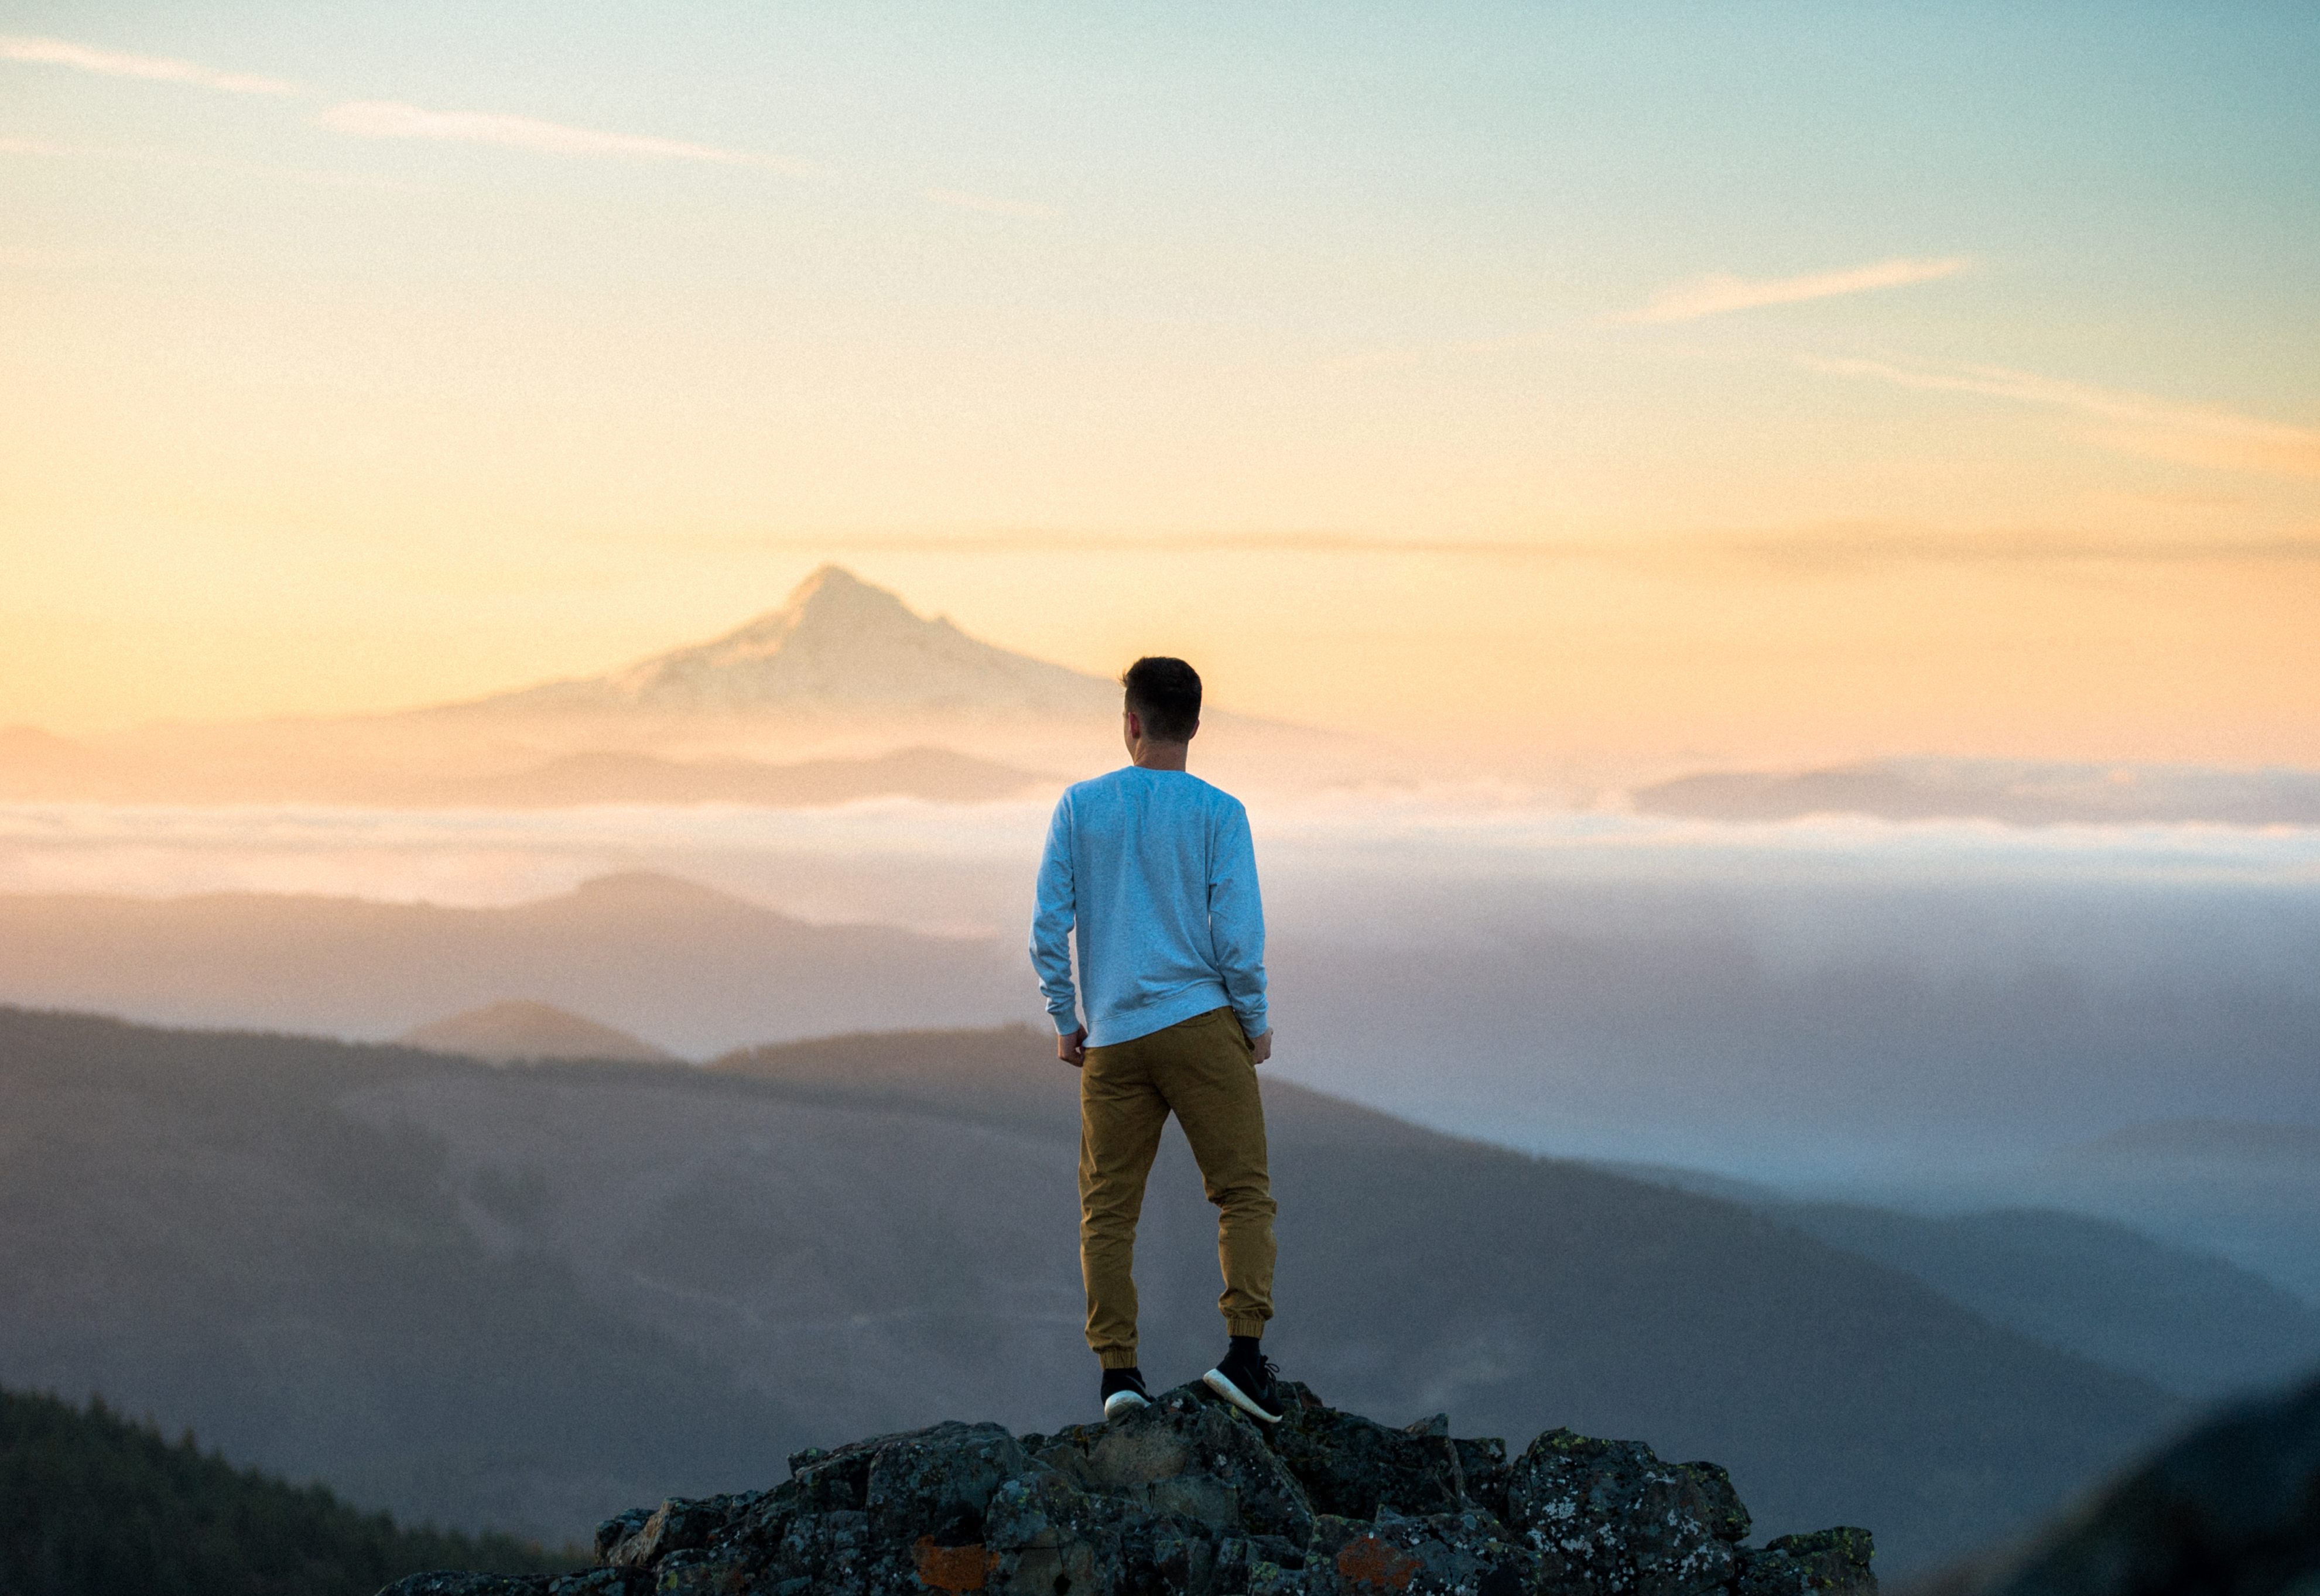 Man standing on top of a mountain observing the view and deep in thought about writing song lyrics.